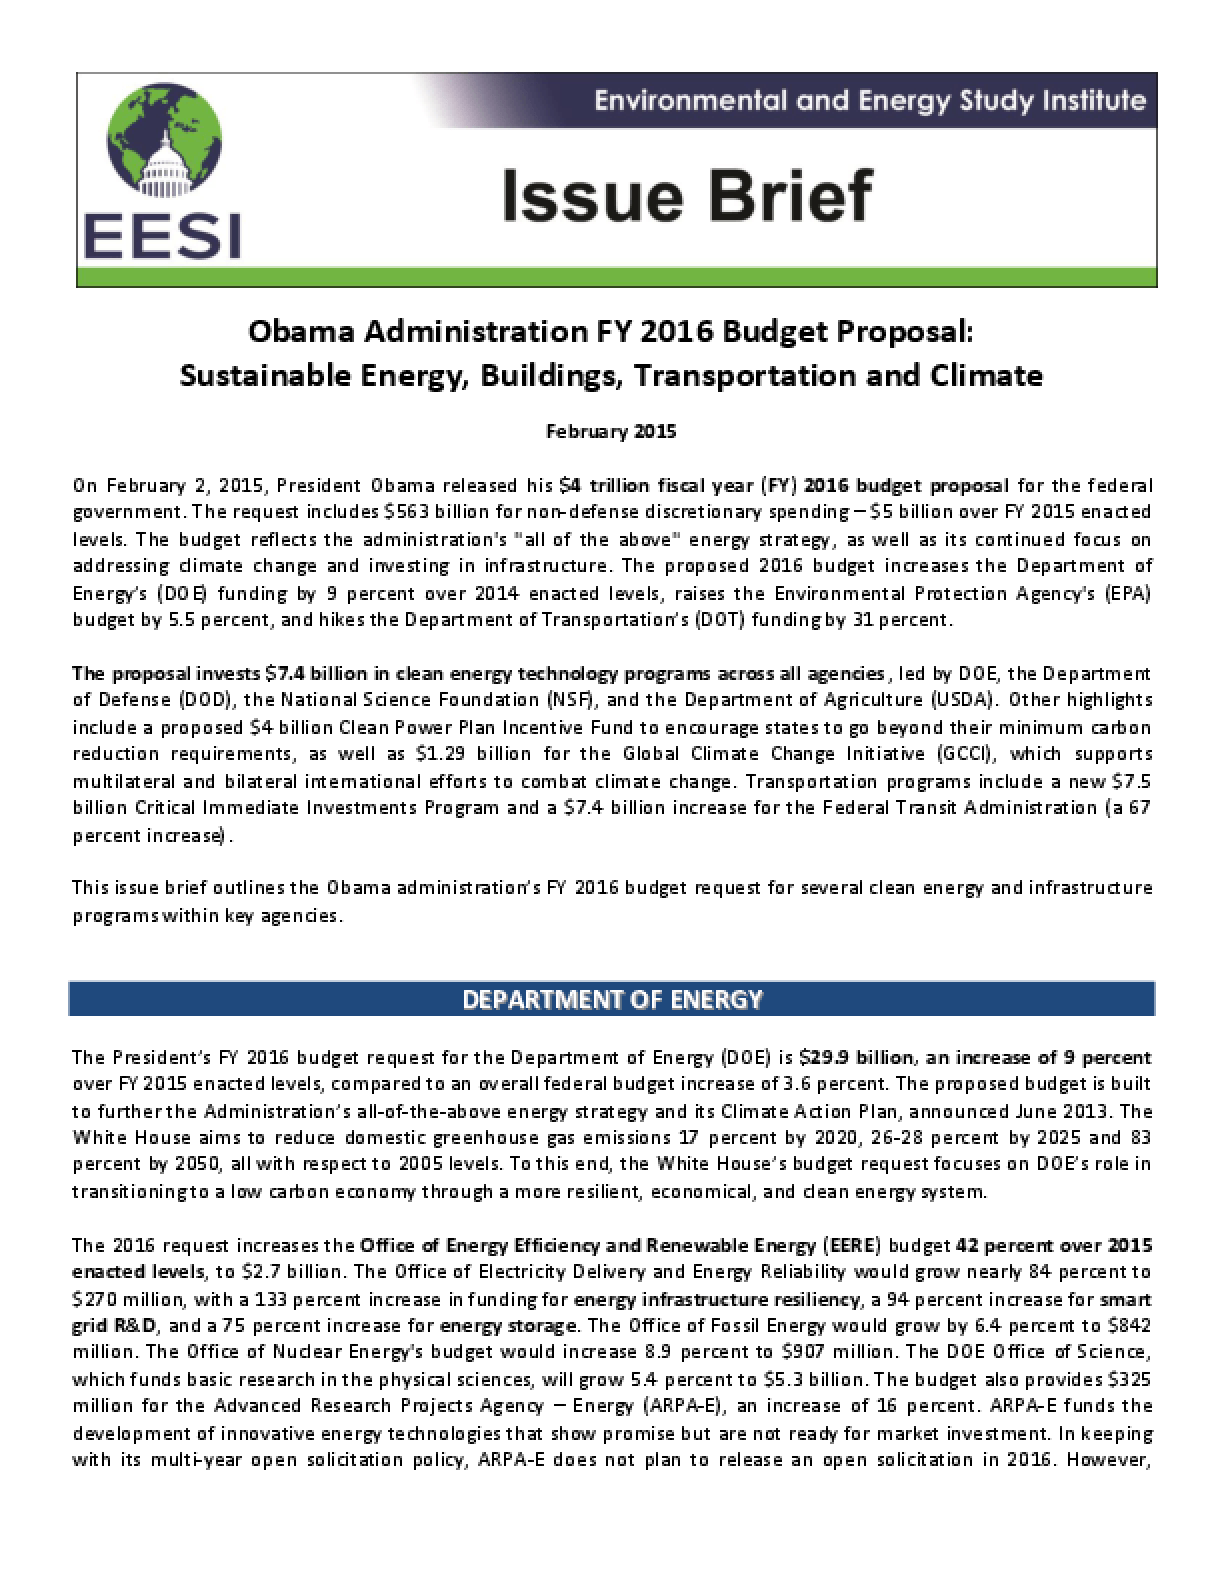 Issue Brief: Obama FY2016 Budget Proposal: Sustainable Energy, Buildings, Transportation and Climate